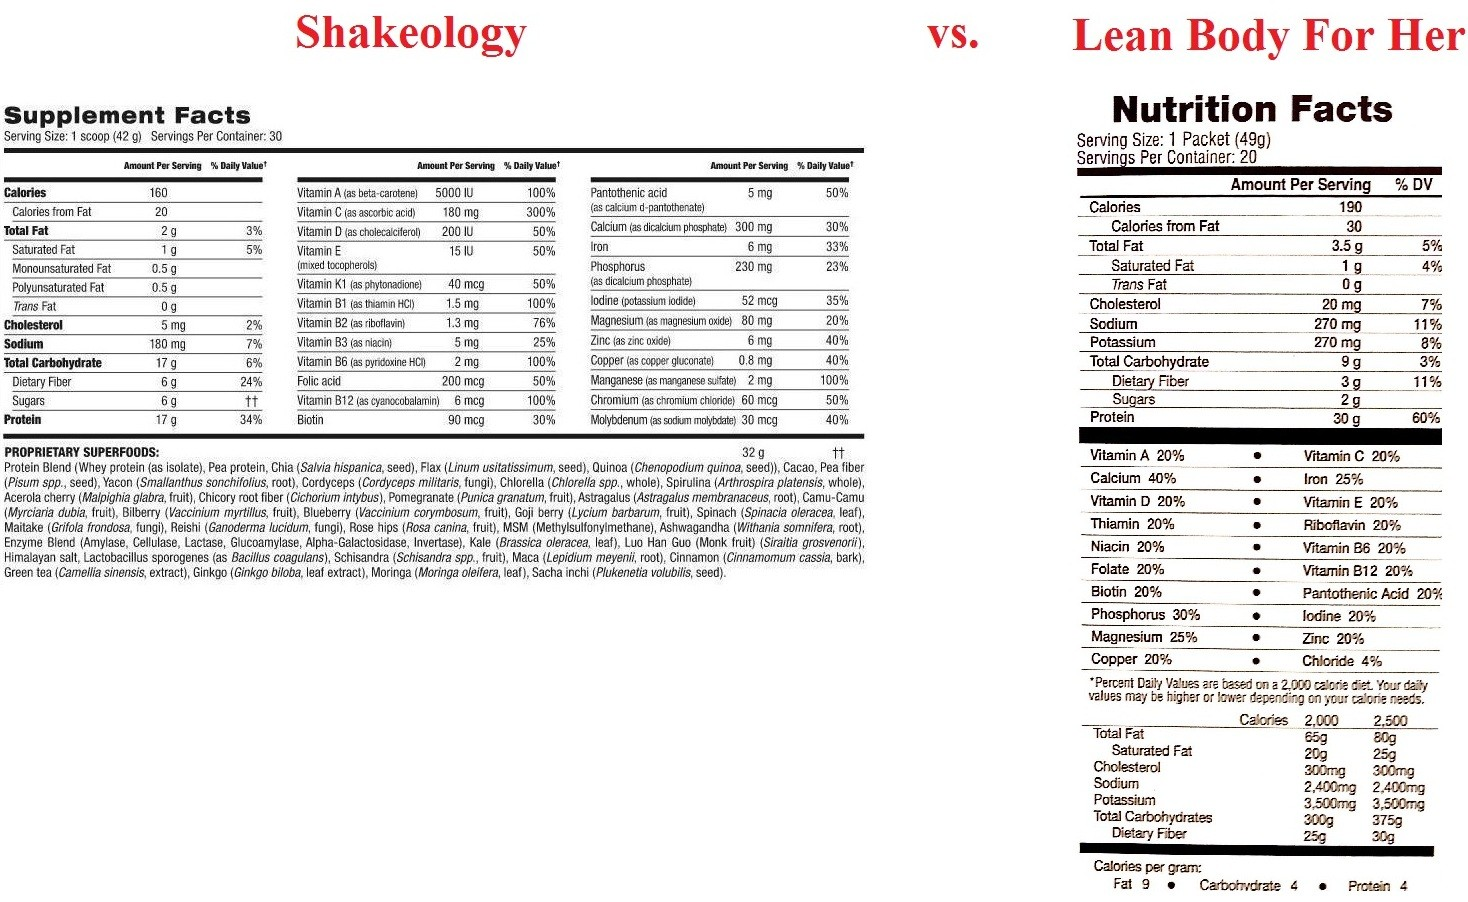 shakeology vs lean body for her